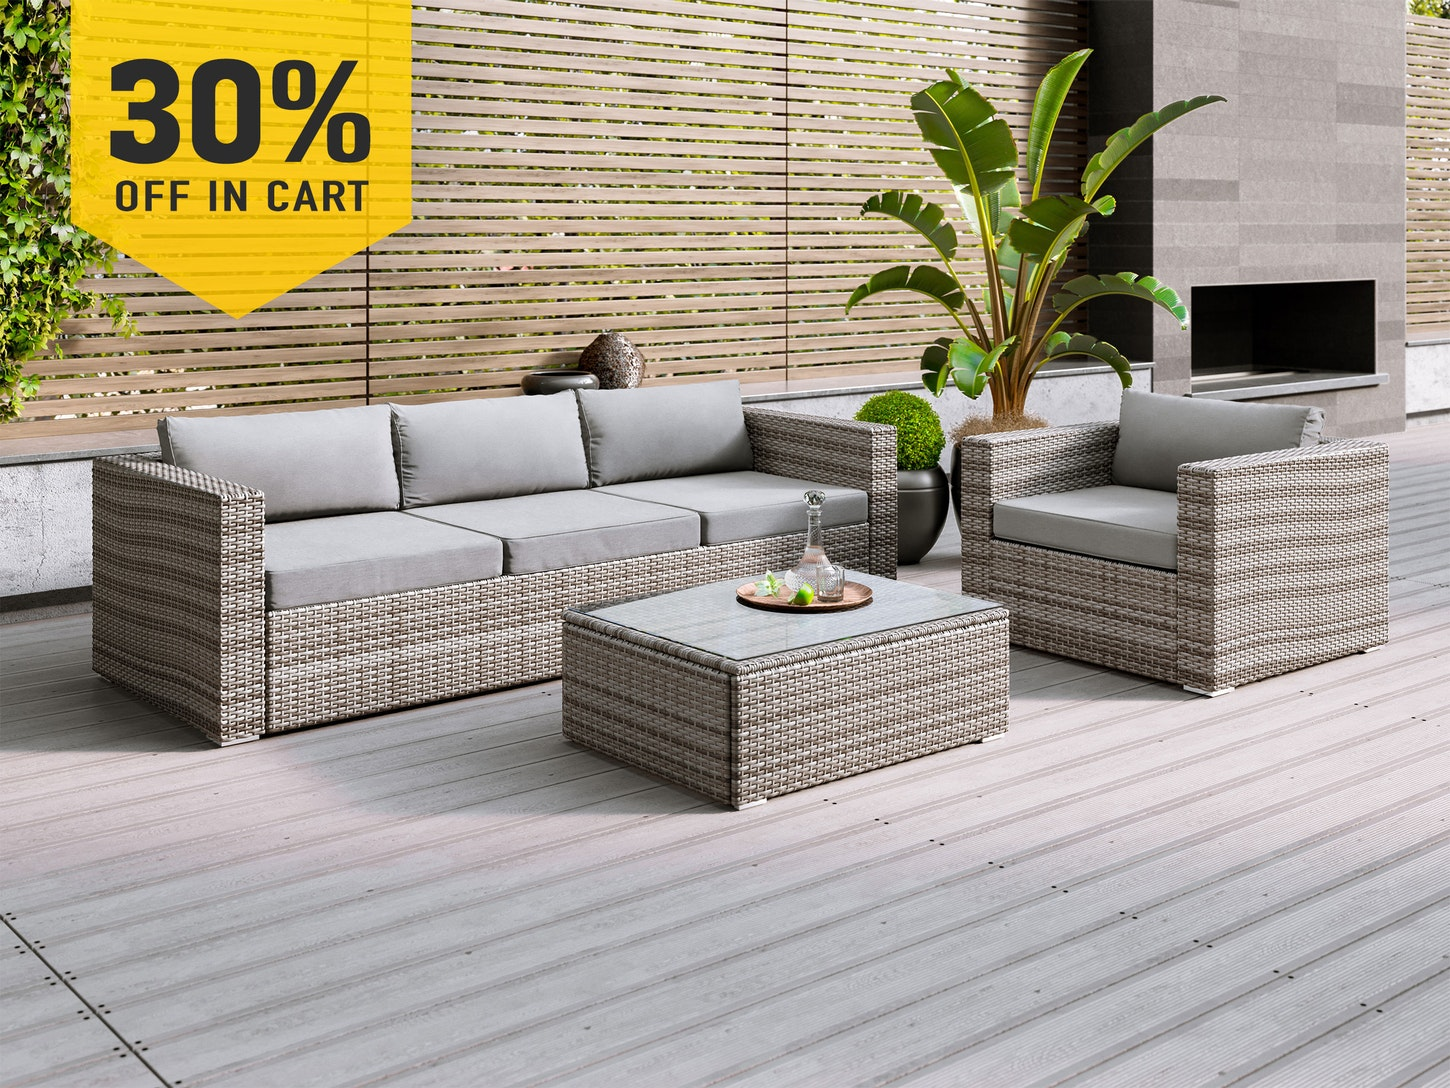 Sandpiper rattan lounge suite 3 piece light lounge sets outdoor furniture home outdoor living trade tested